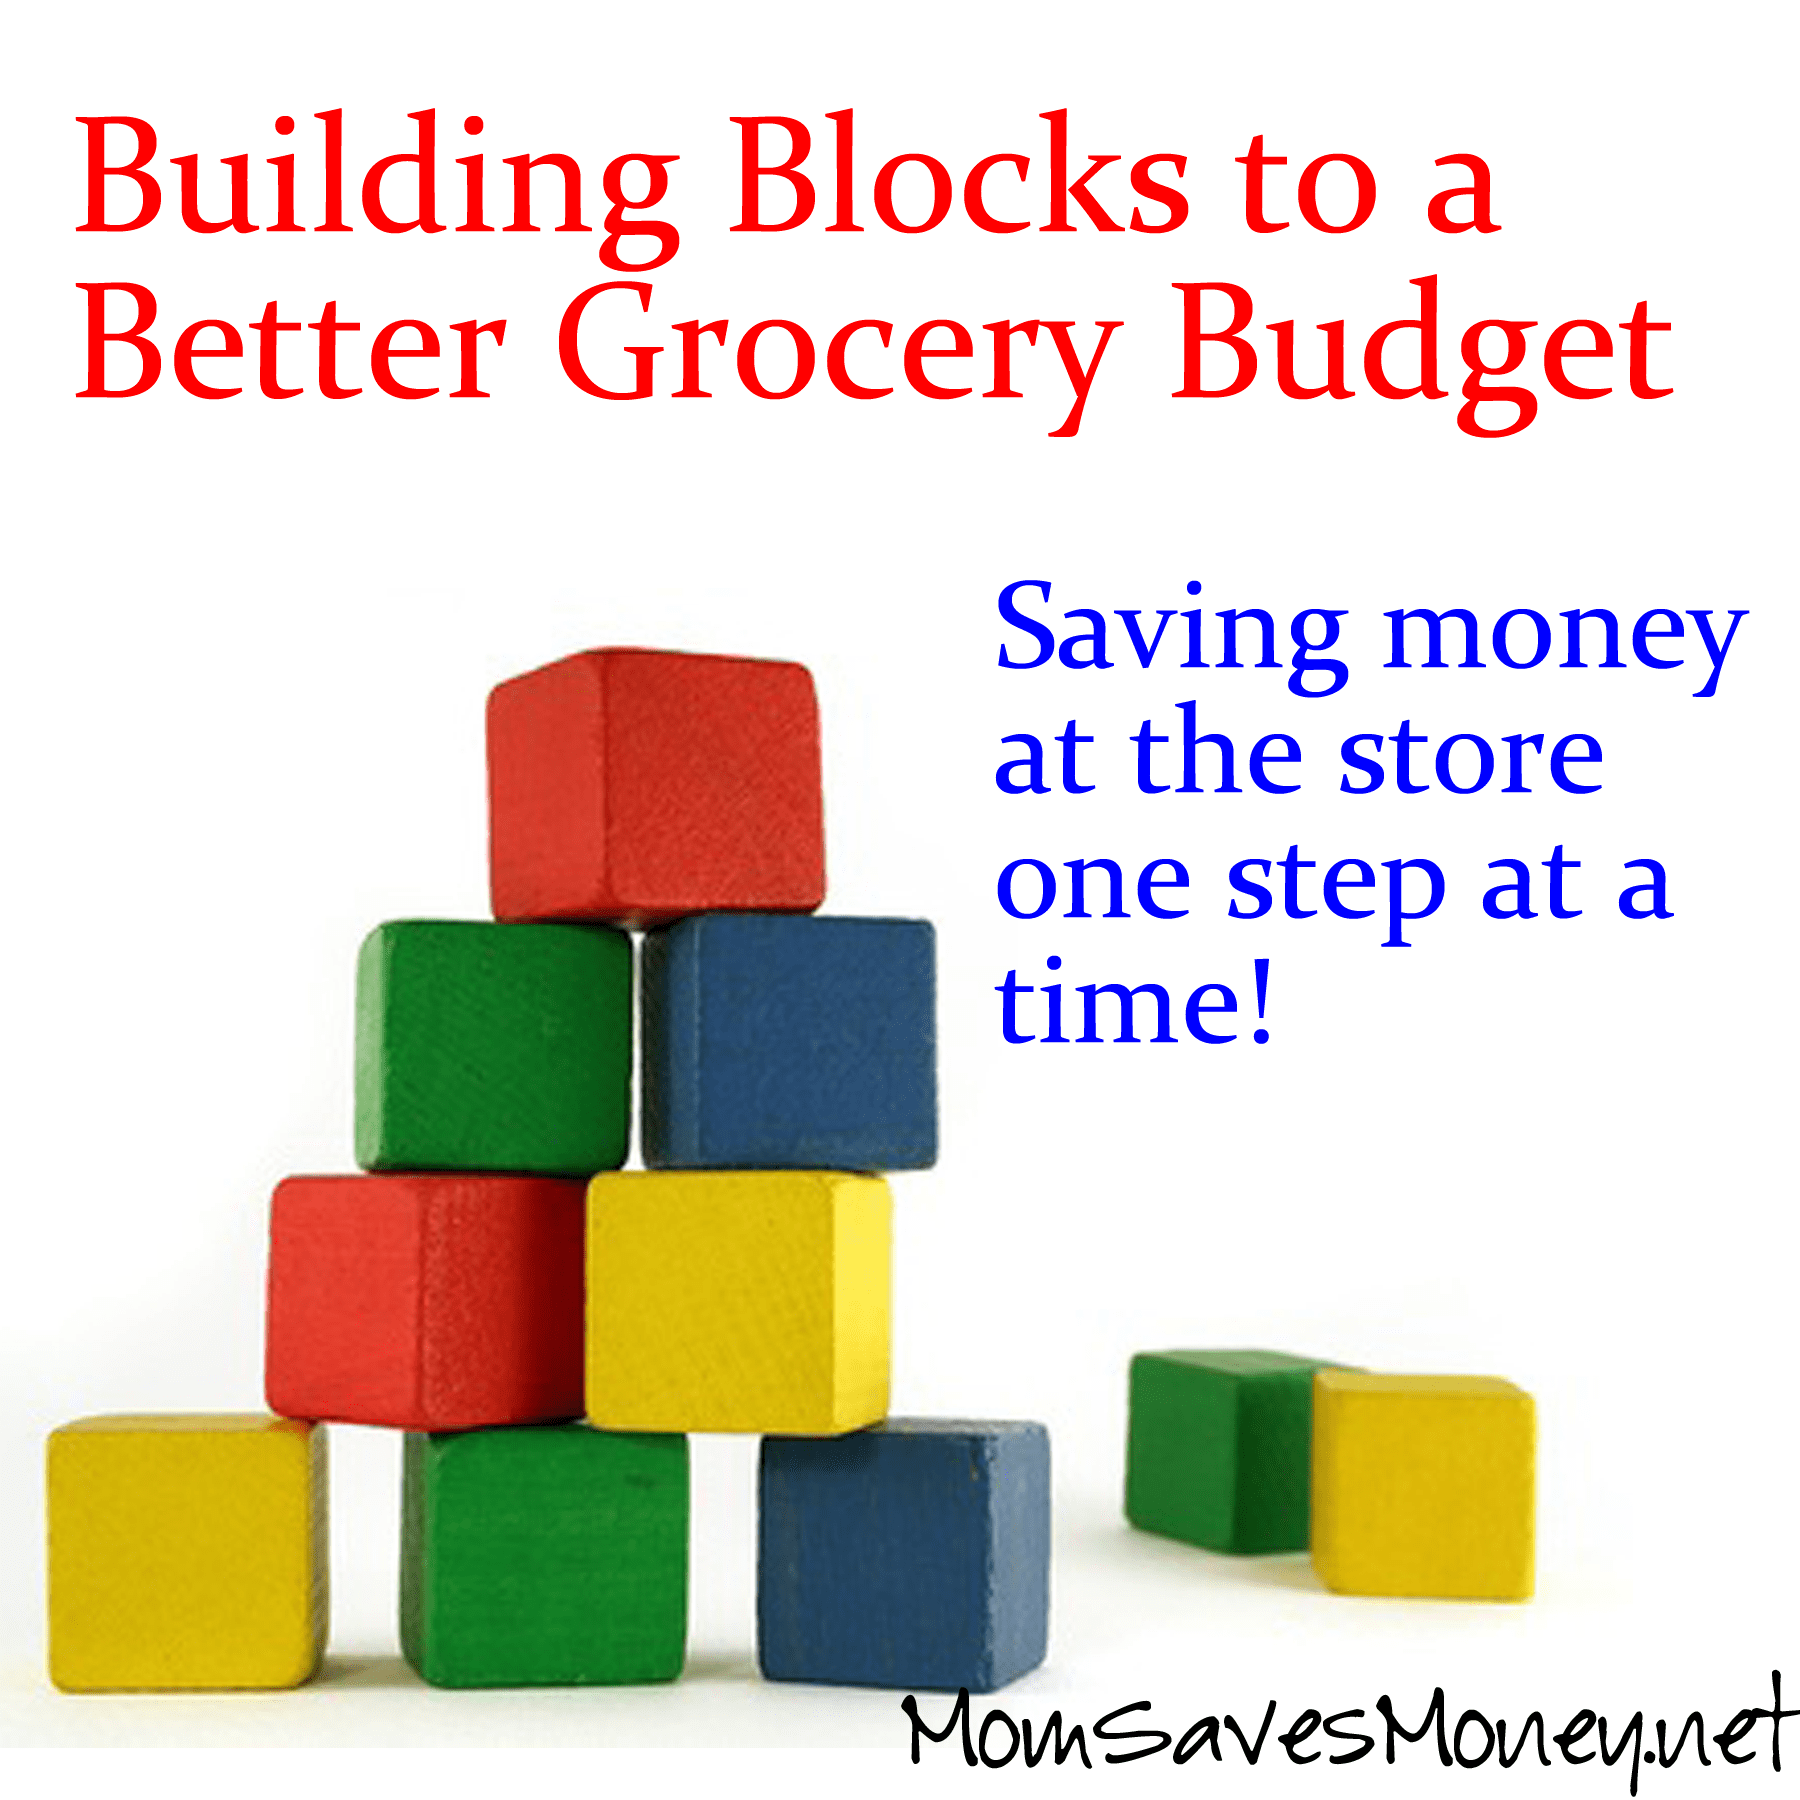 Building Blocks to a Better Grocery Budget! Part 8 - Know